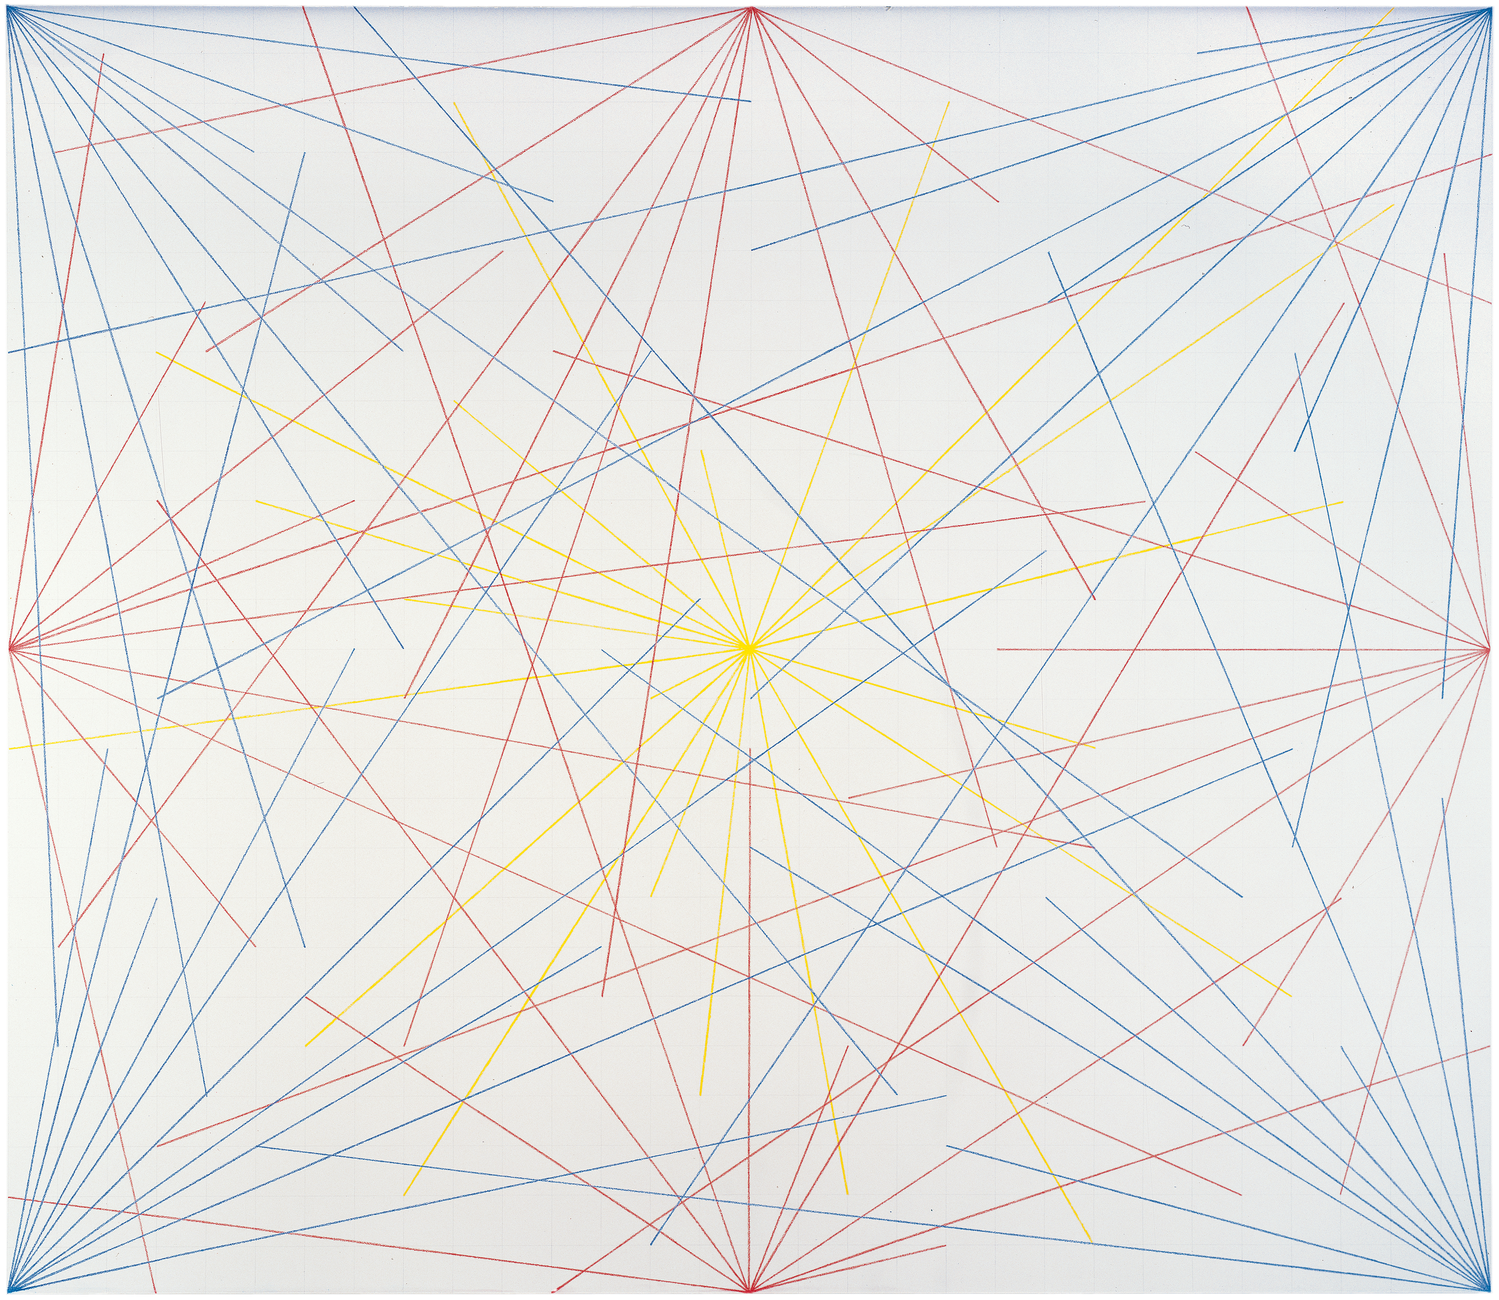 A white canvas with straight, intersecting blue, red, and yellow lines